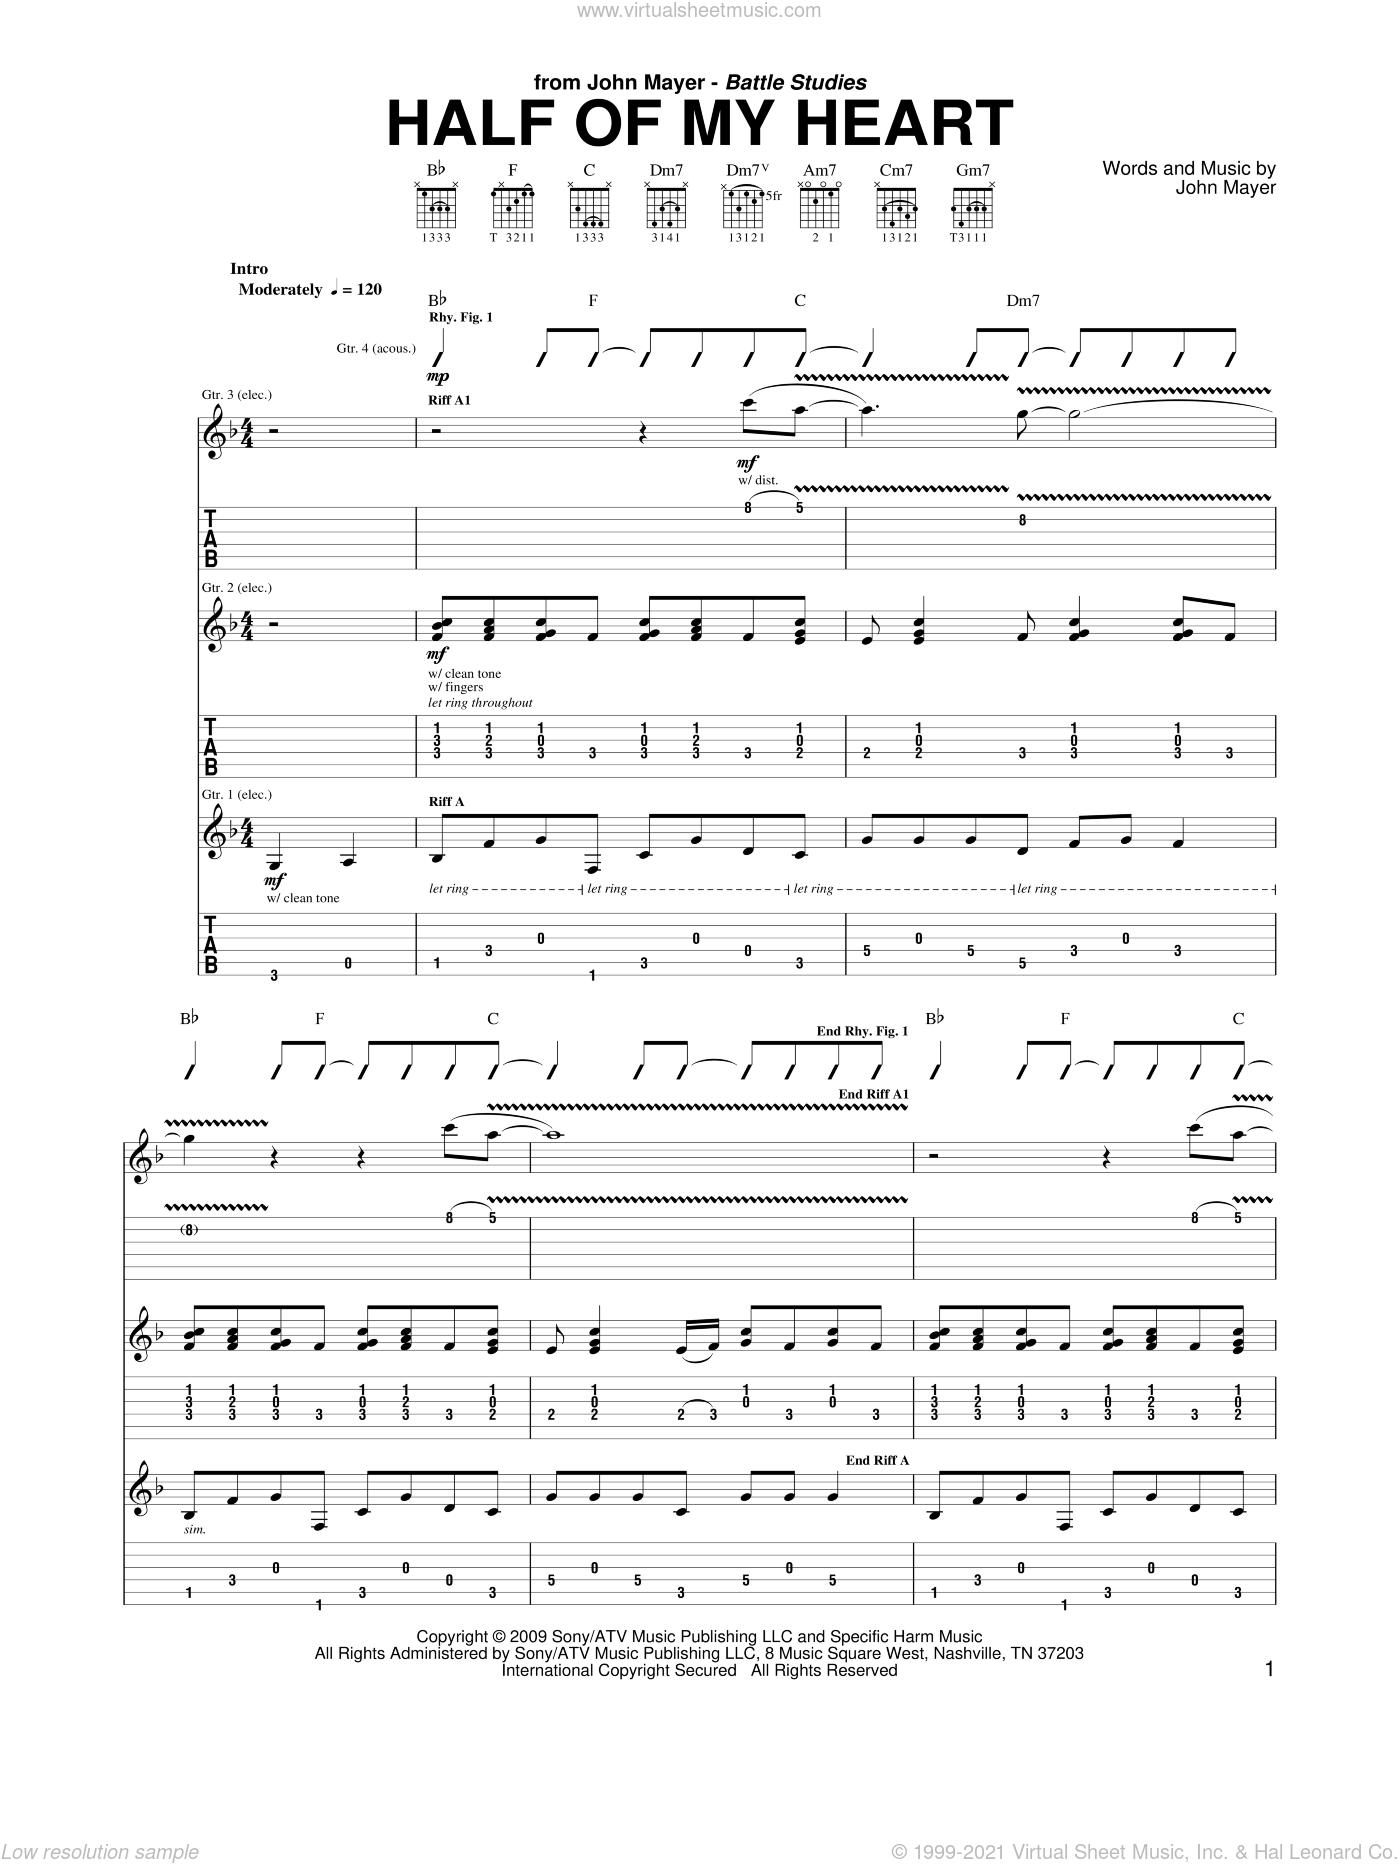 Half Of My Heart sheet music for guitar (tablature) by John Mayer featuring Taylor Swift